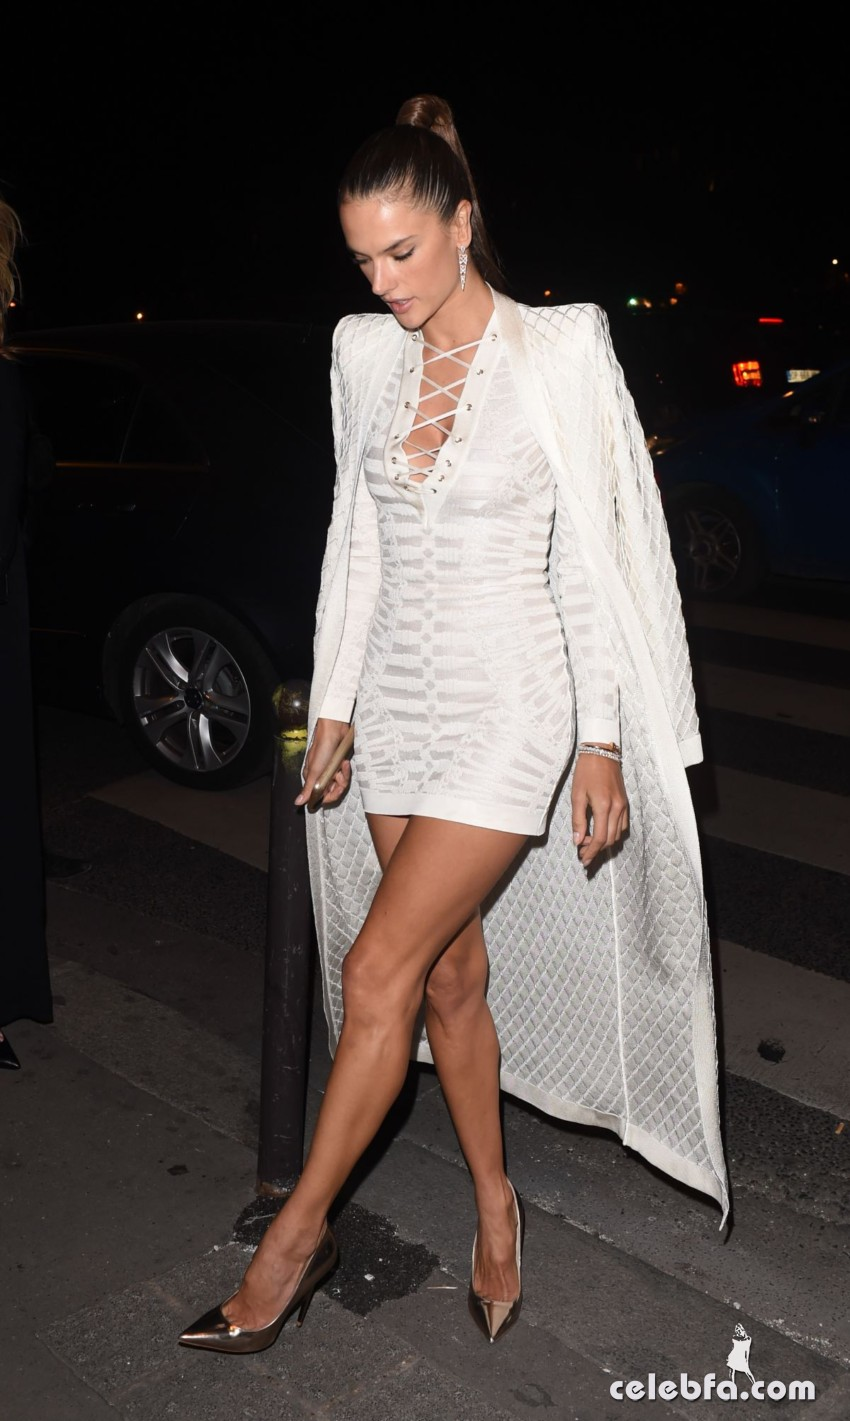 alessandra-ambrosio-at-balmain-fashion-show-after-party-in-paris (5)